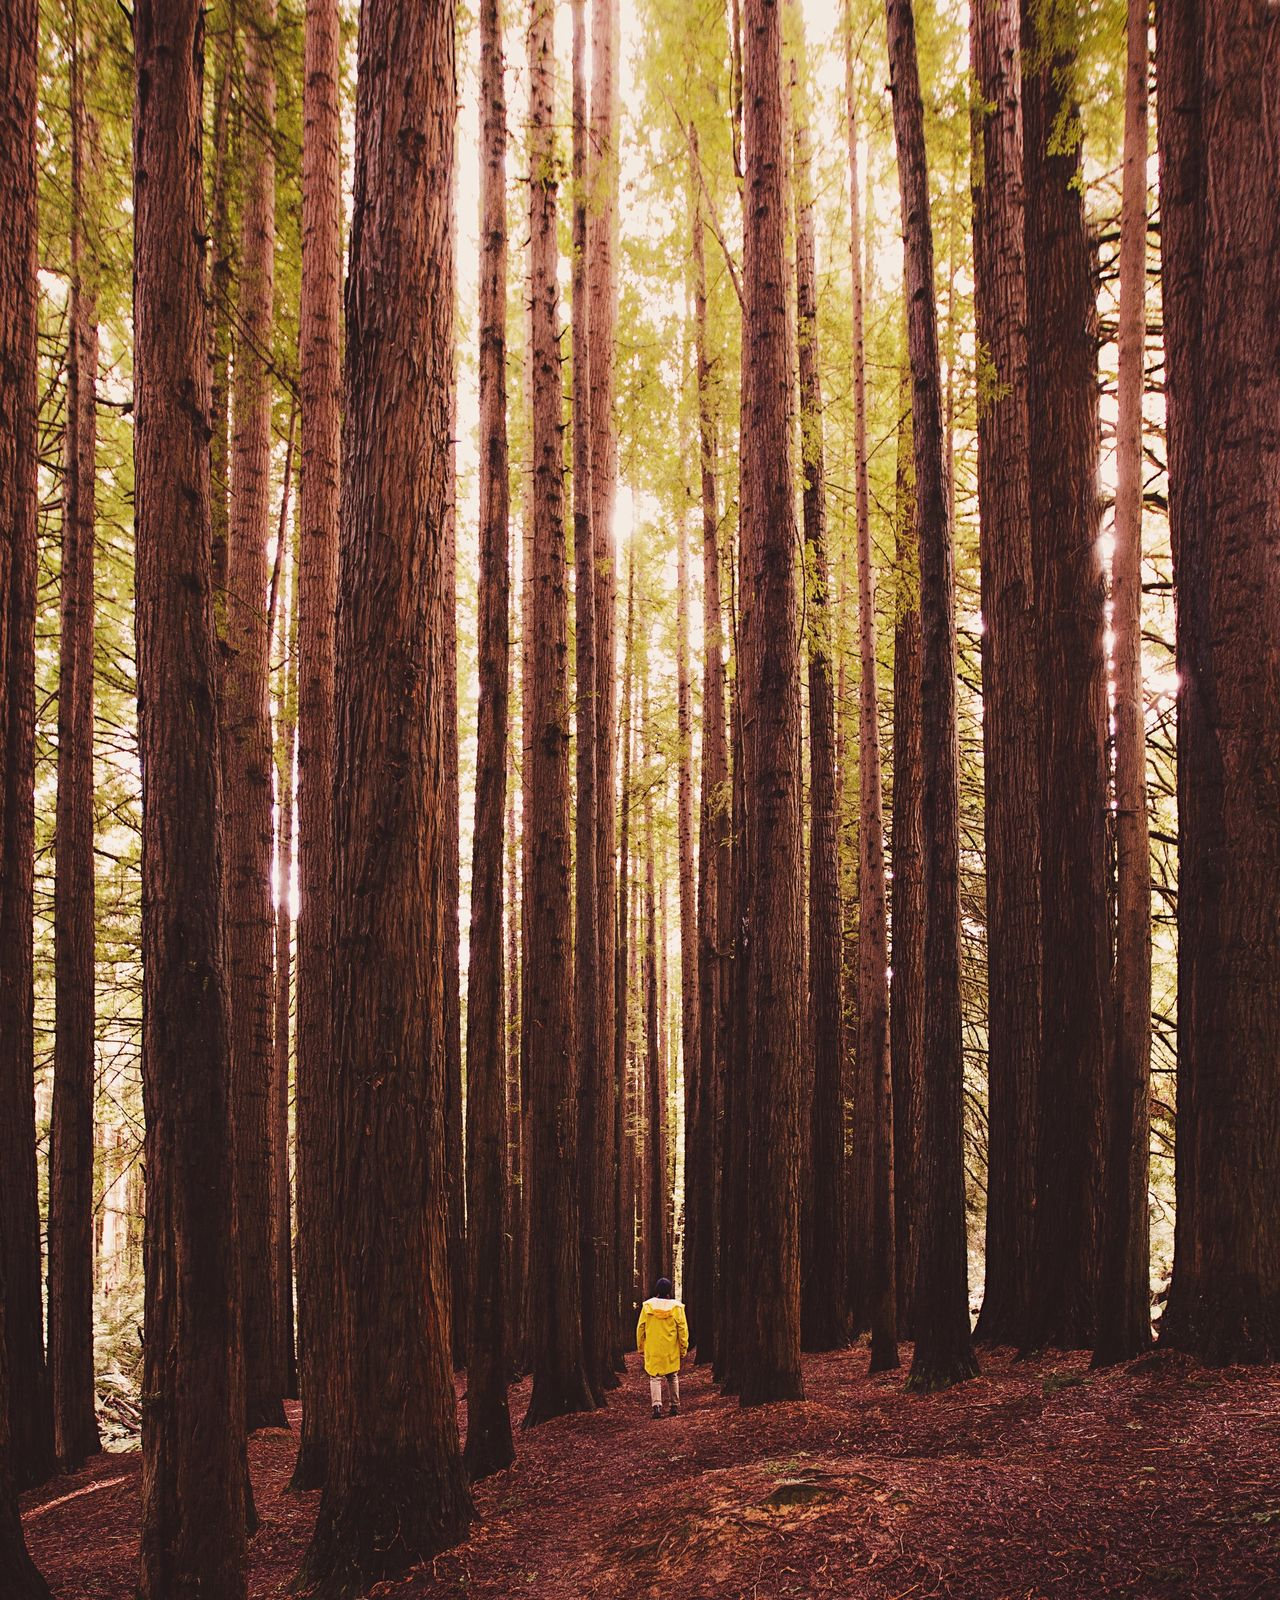 Forest Nature Tree WoodLand Tree Trunk Beauty In Nature Outdoors Landscape Scenics No People Day